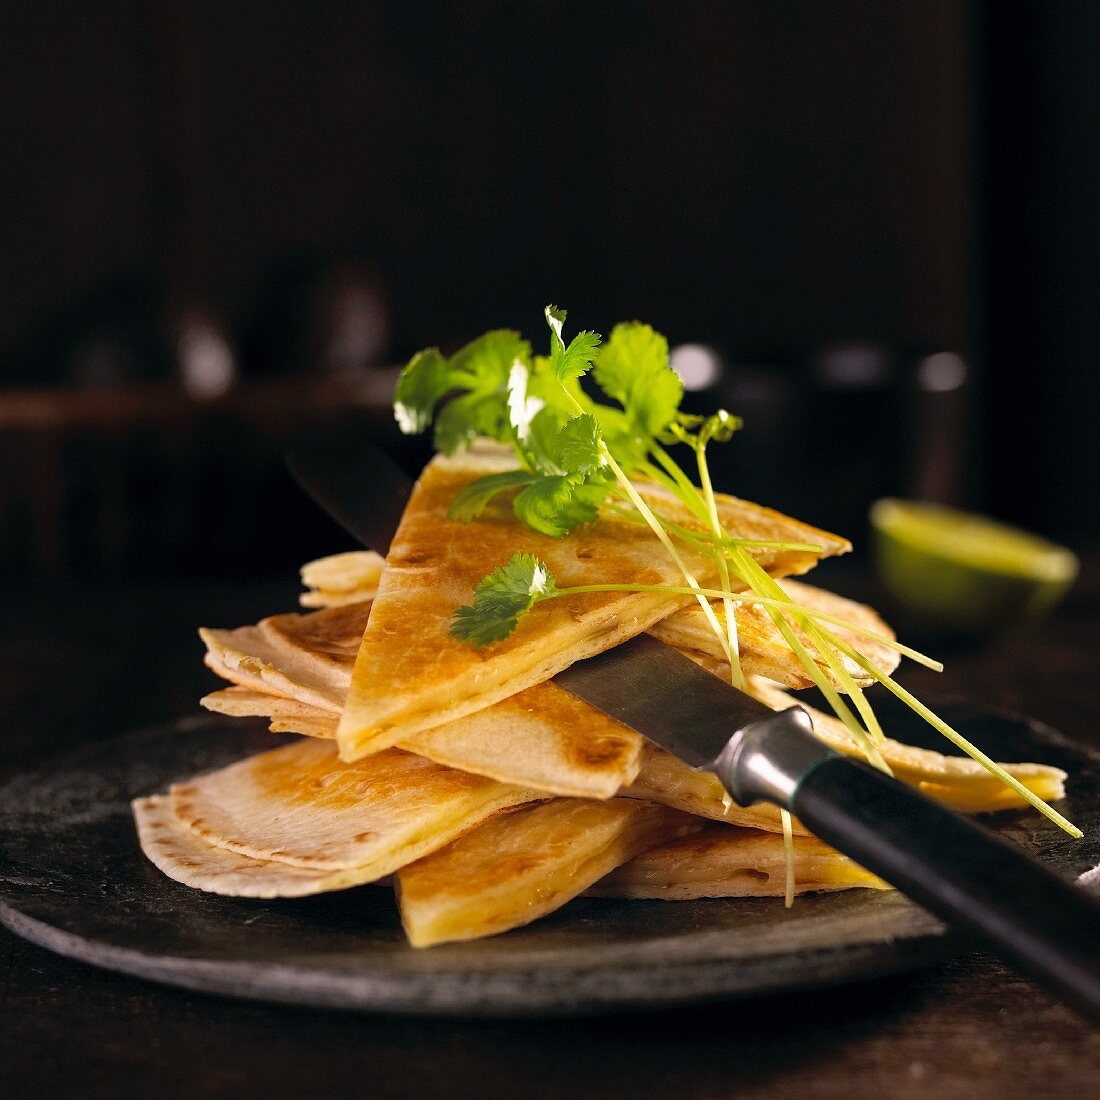 A stack of quesadillas garnished with coriander (Mexico)